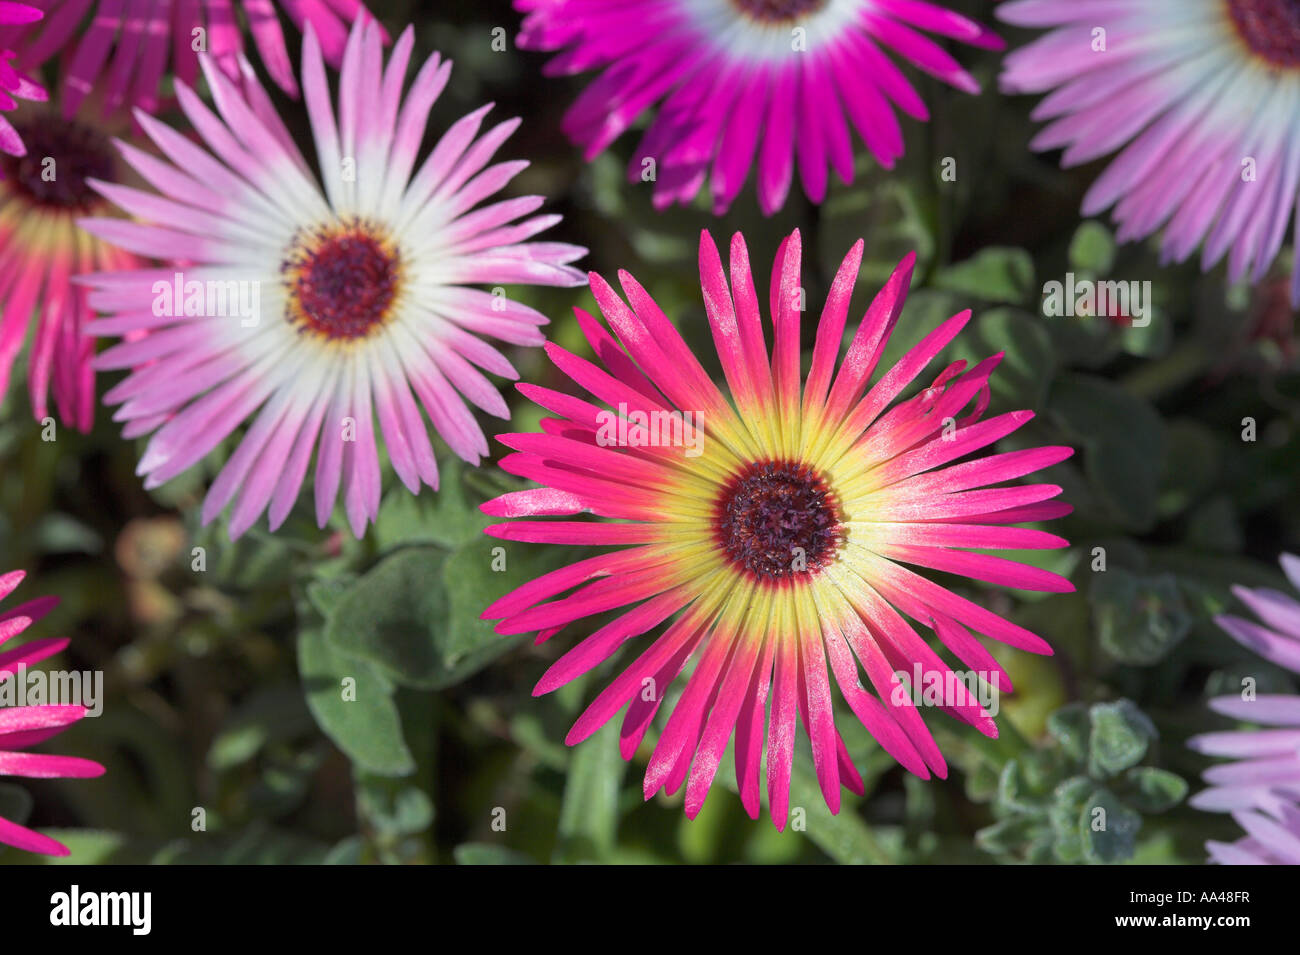 Bright pink flower with yellow centre stock photos bright pink pink and yellow and purple and white aster flower heads stock image mightylinksfo